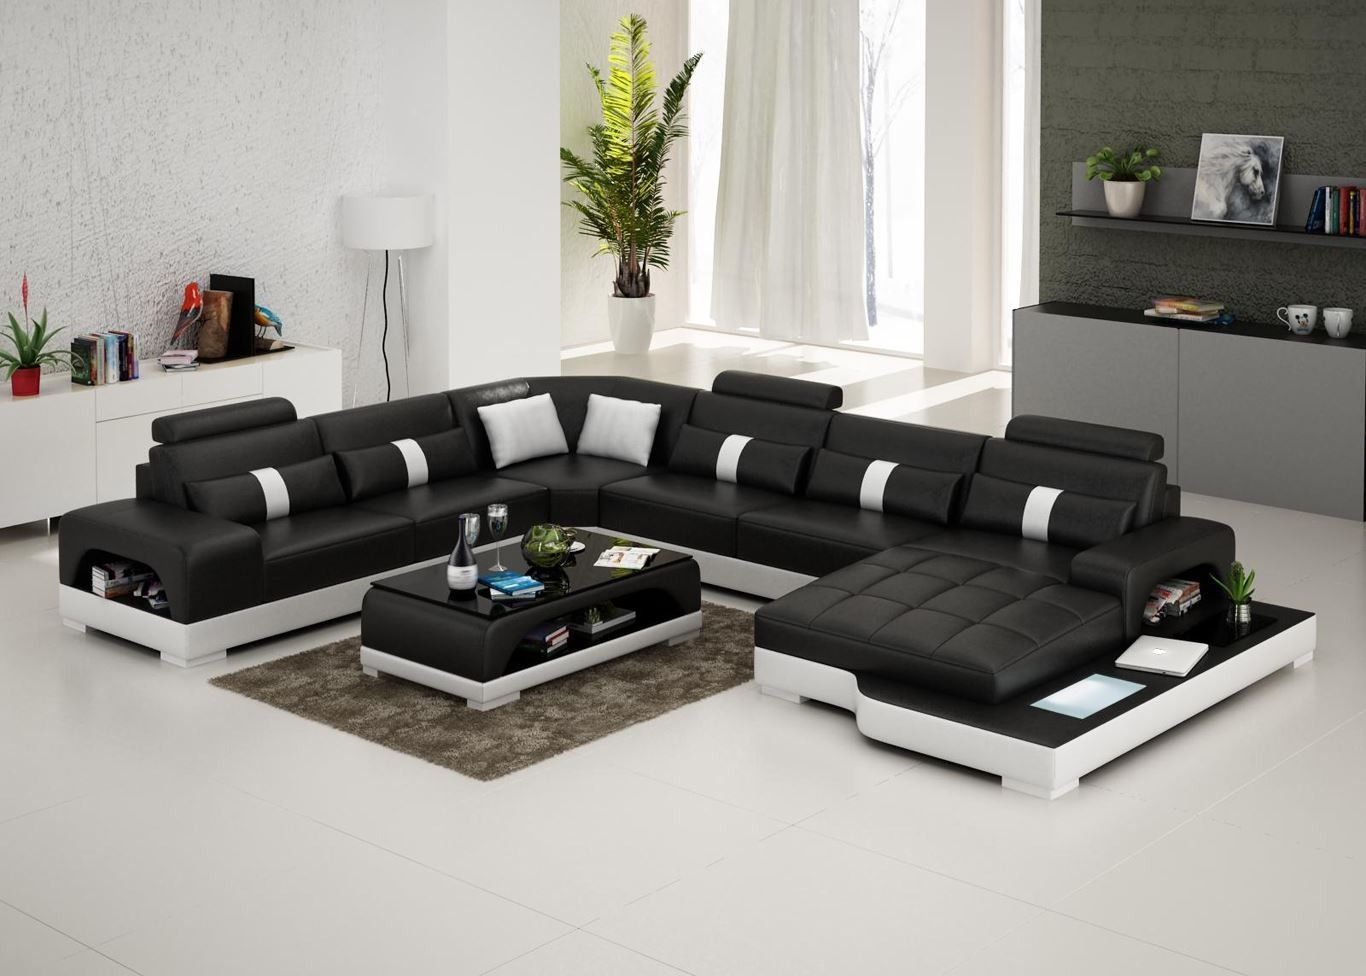 Sofa Reclinavel Como Inclinar 100 Modern Sectional Sofas And Couch That You Will Love